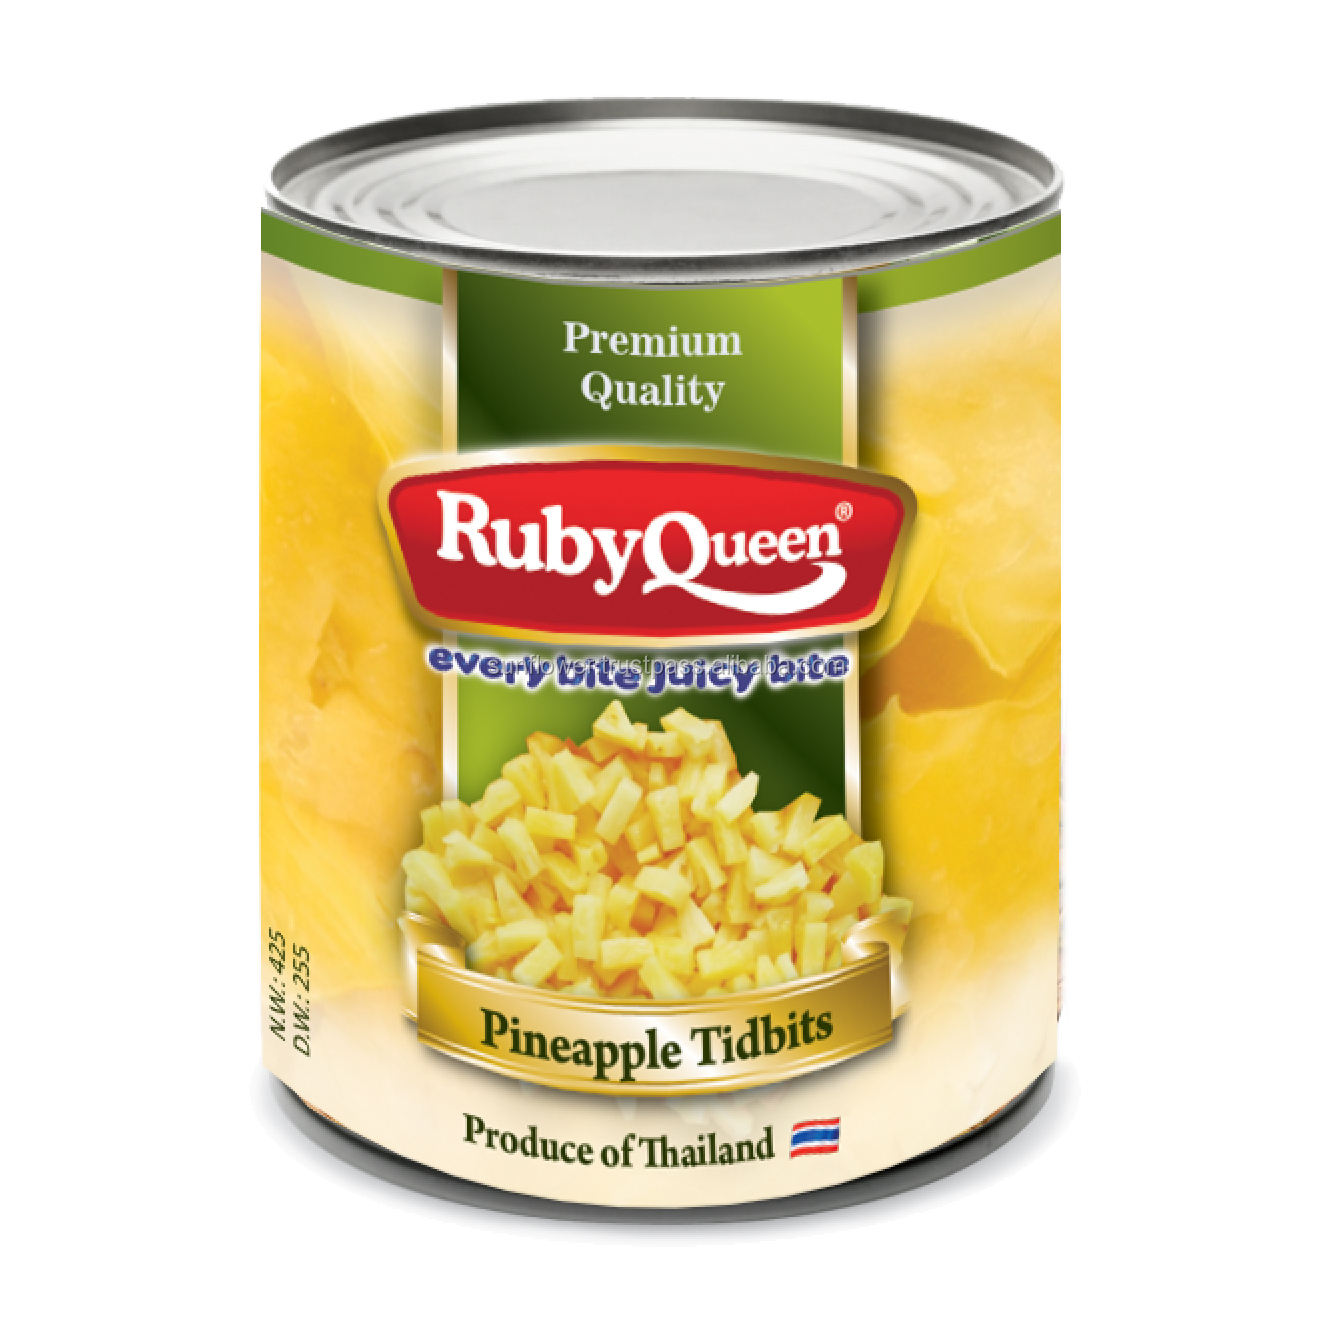 Canned Thai Pineapple Chunks, Tidbits in Light Syrup Premium Quality